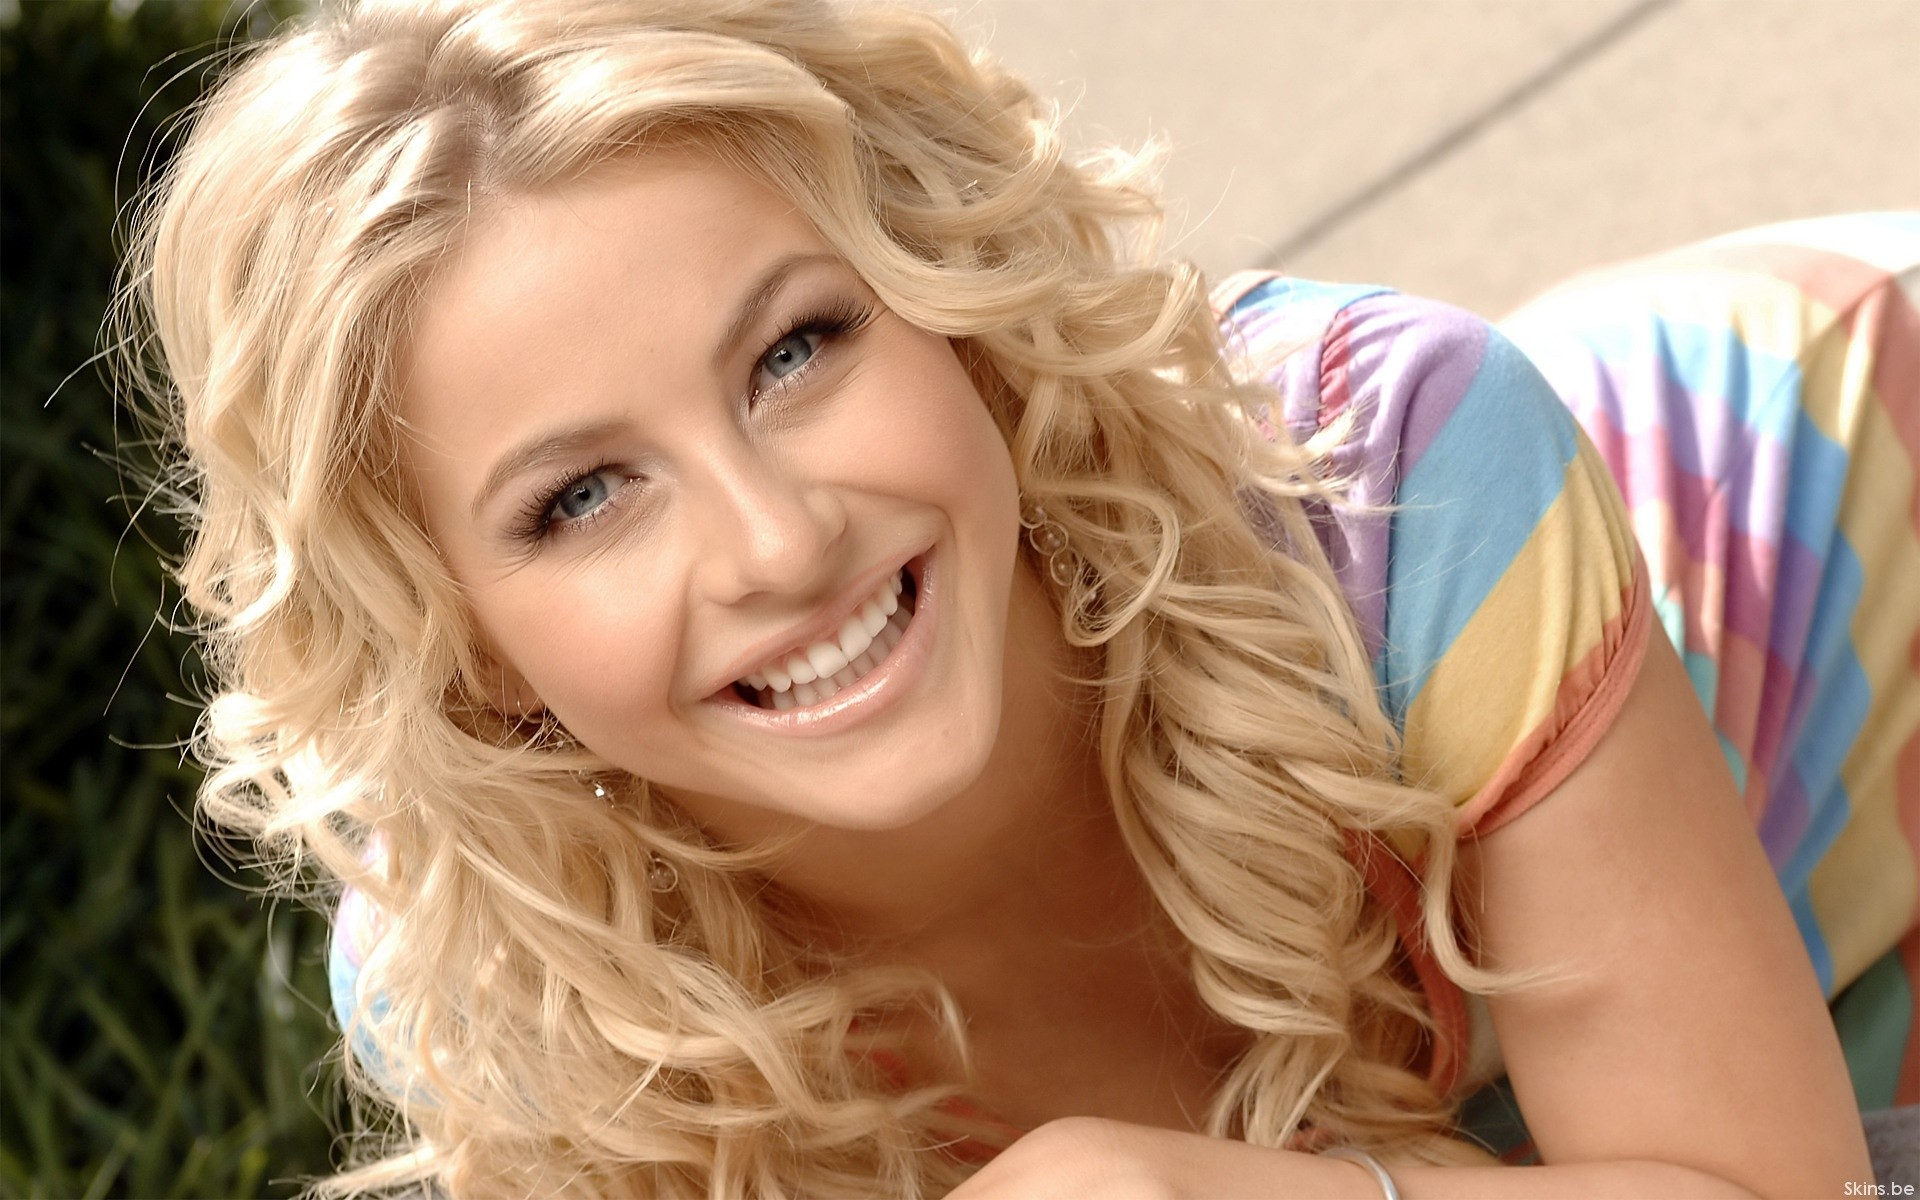 julianne hough full hd wallpaper and background image | 1920x1200